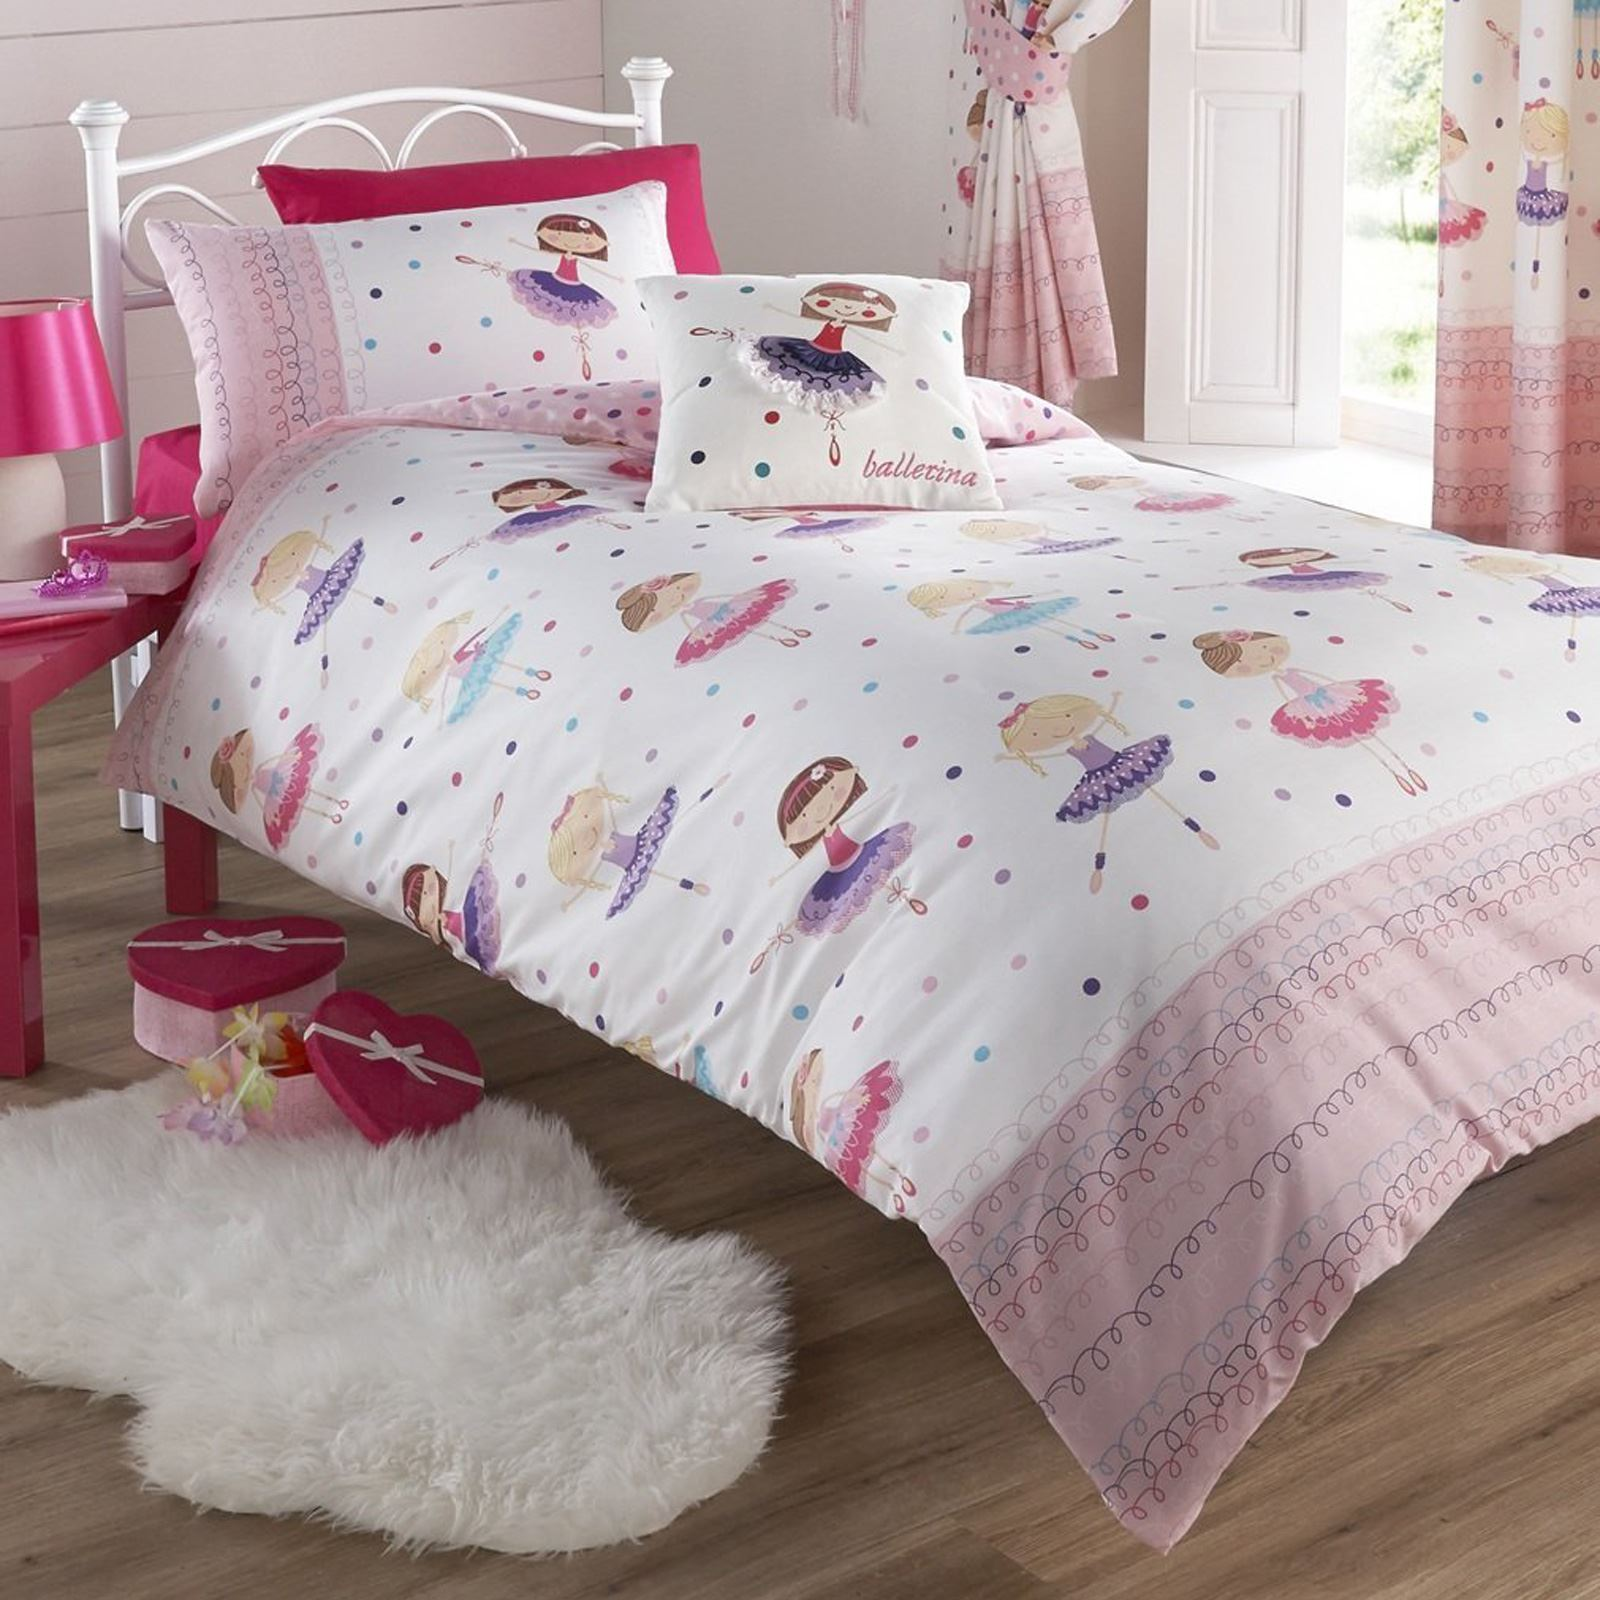 BALLERINA DESIGN DUVET COVER SETS IN VARIOUS SIZES GIRLS